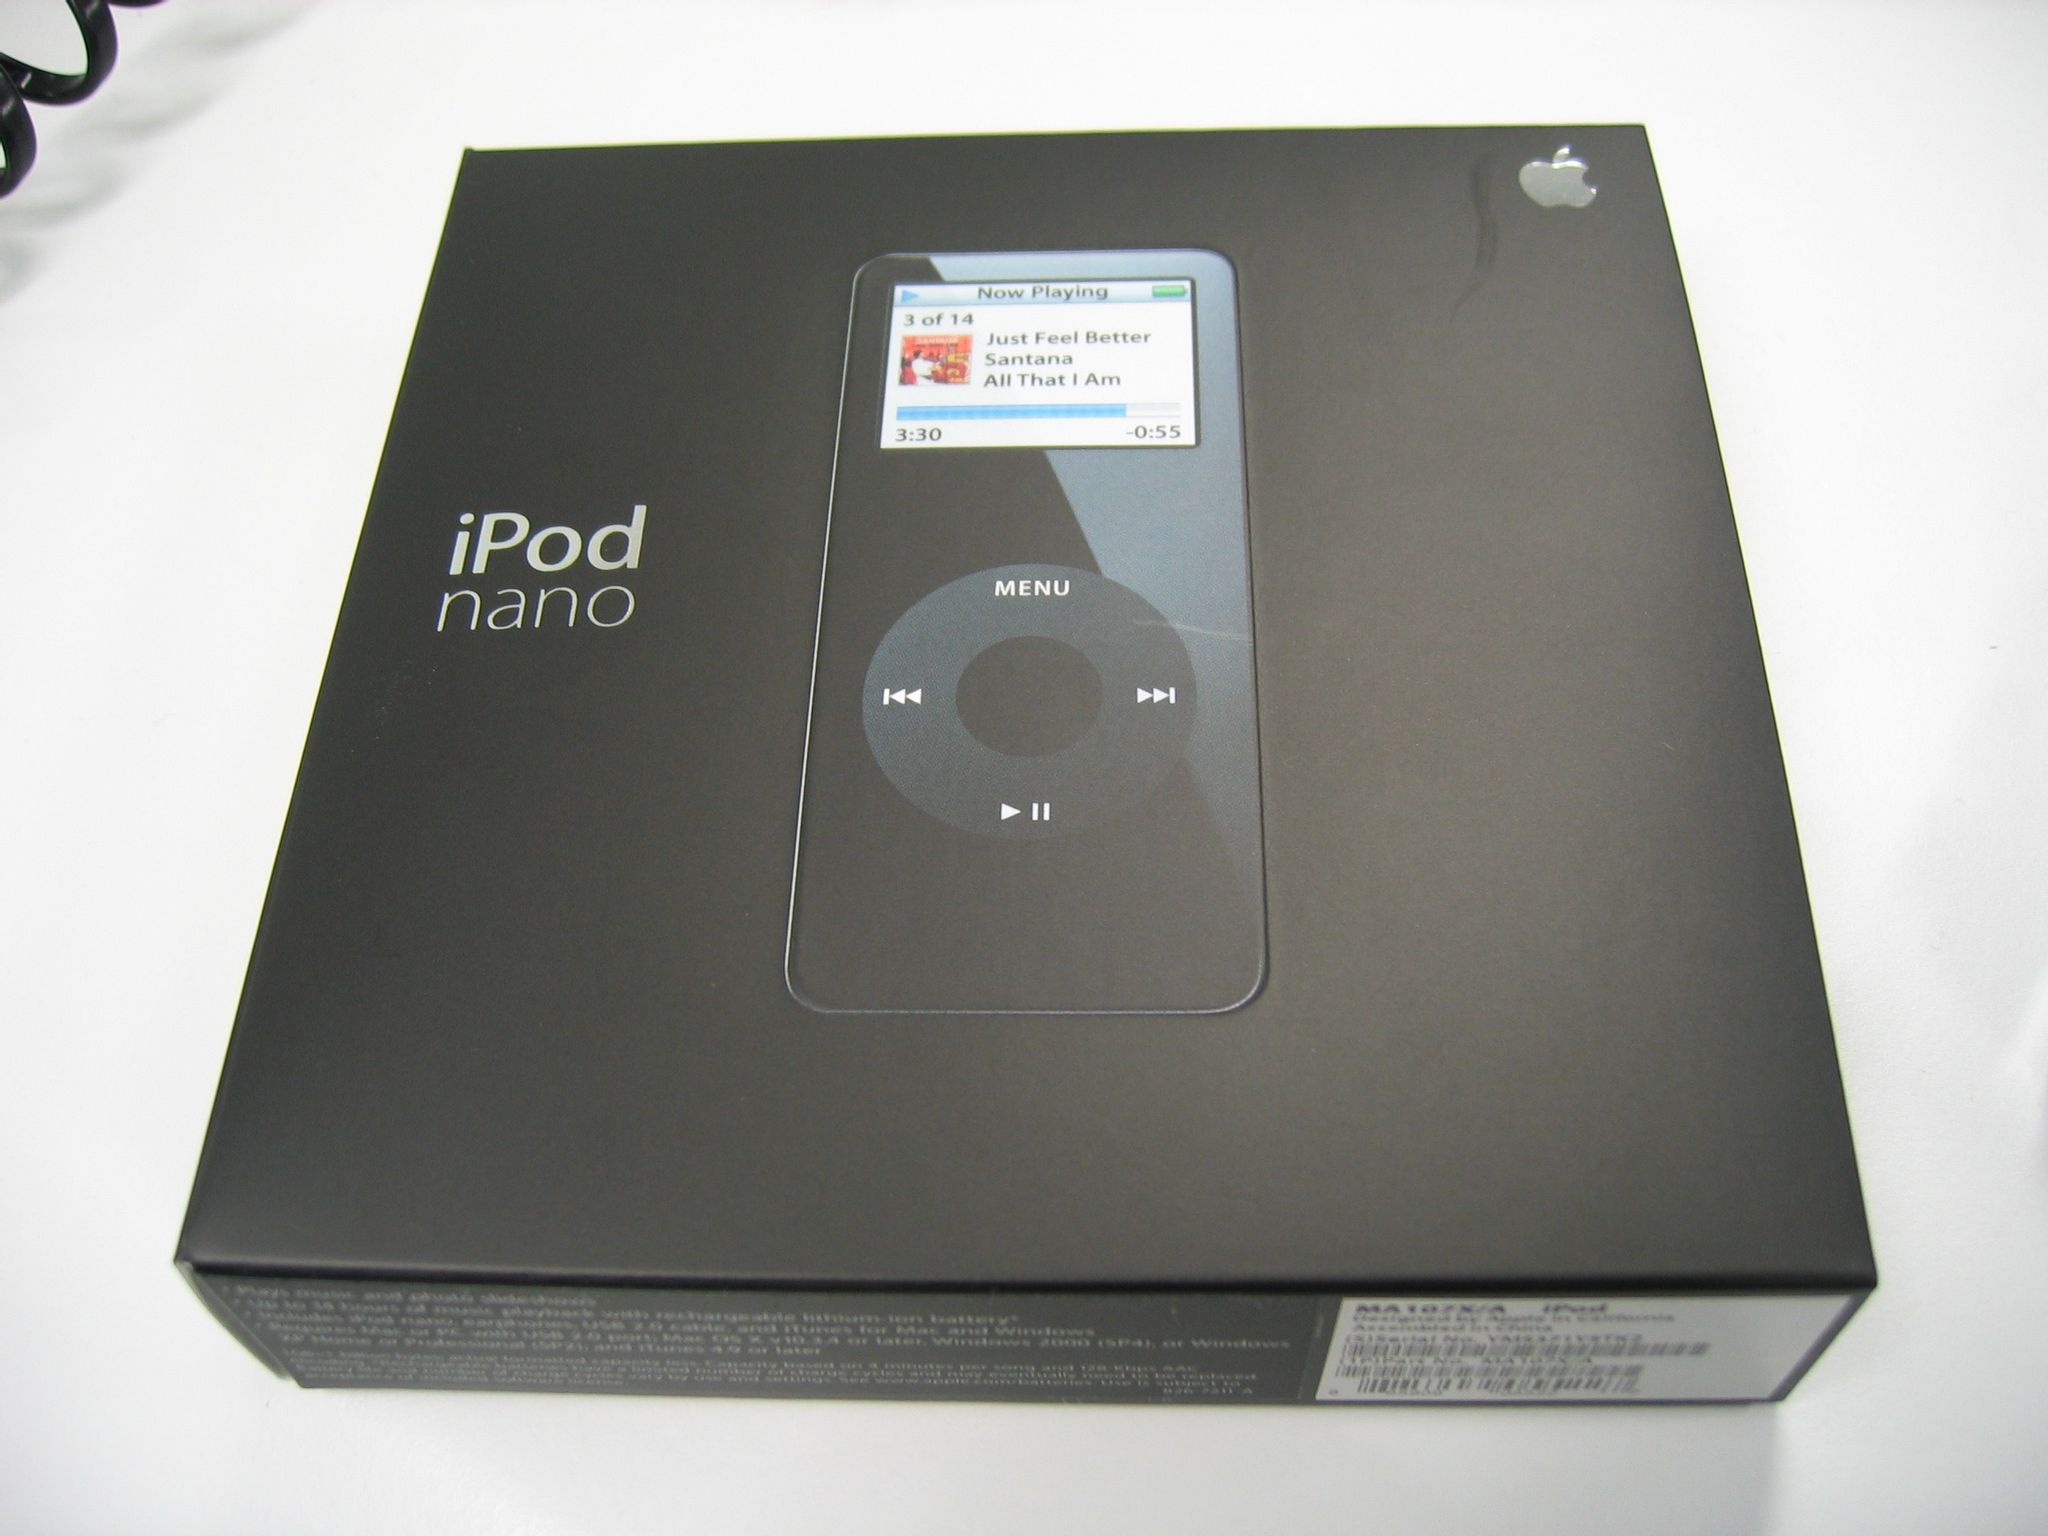 """A photo of the box of an iPod nano. The box black, square, thin, and very minimalist, with just a photo of the iPod nano itself on it, along with the words """"iPod nano"""" in silver next to it."""